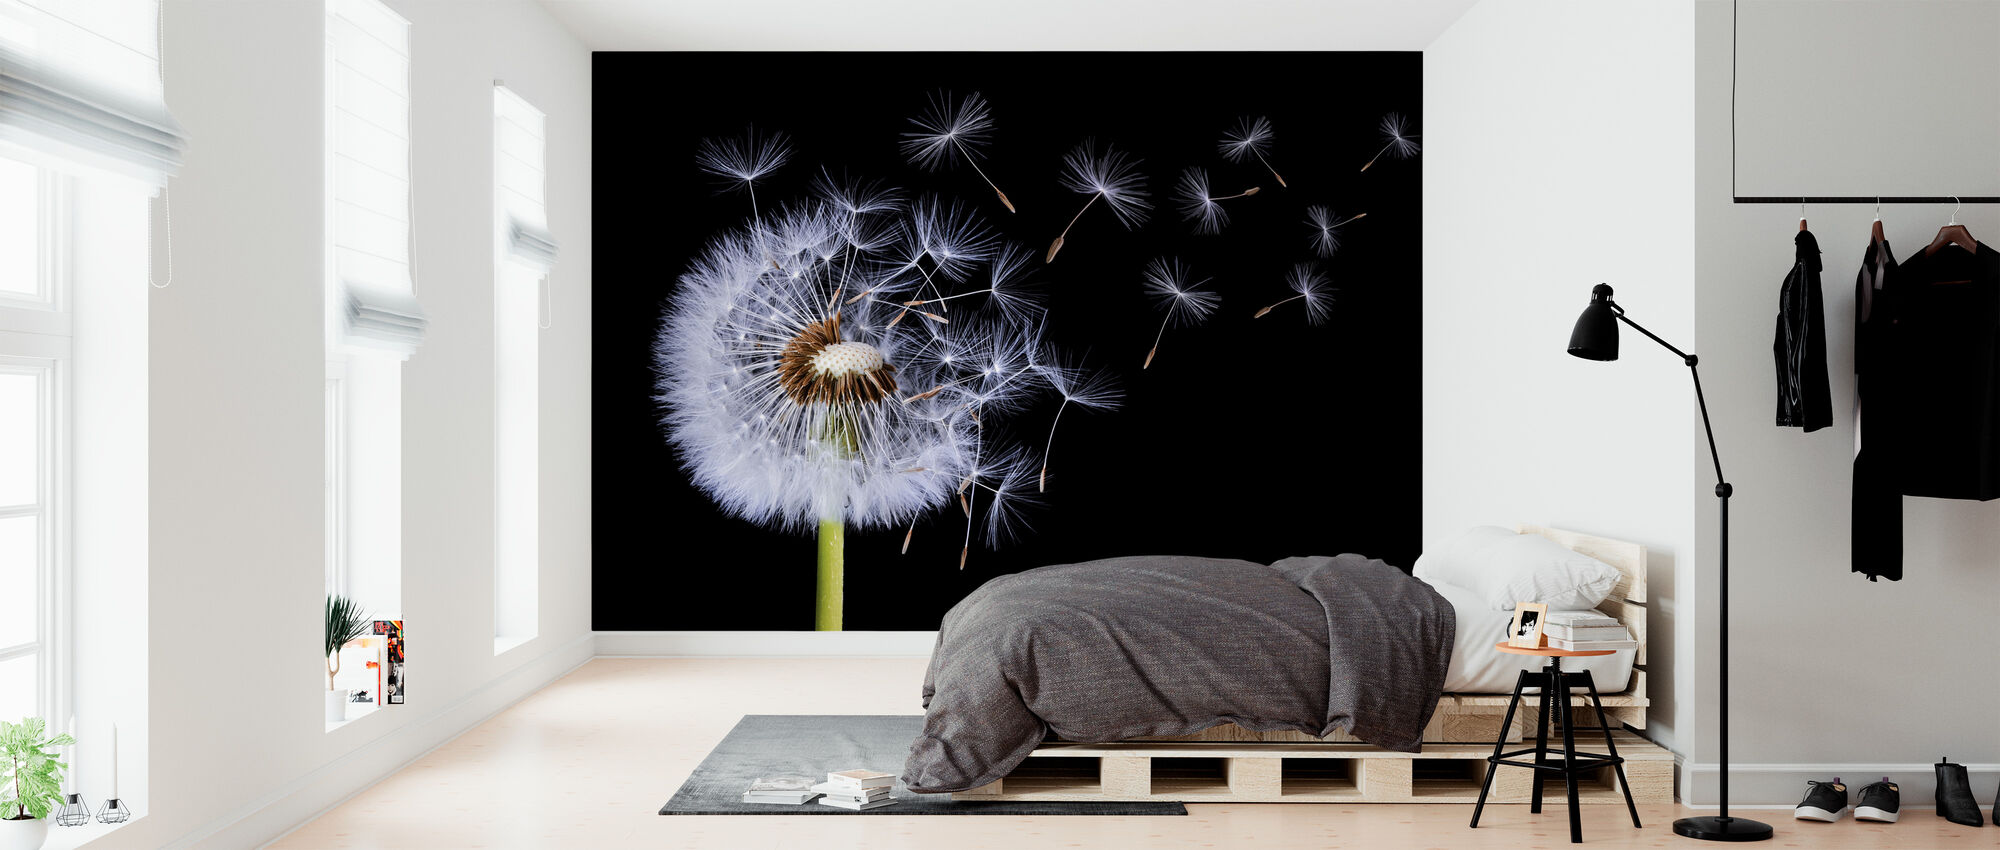 Dandelion Blowing - Wallpaper - Bedroom